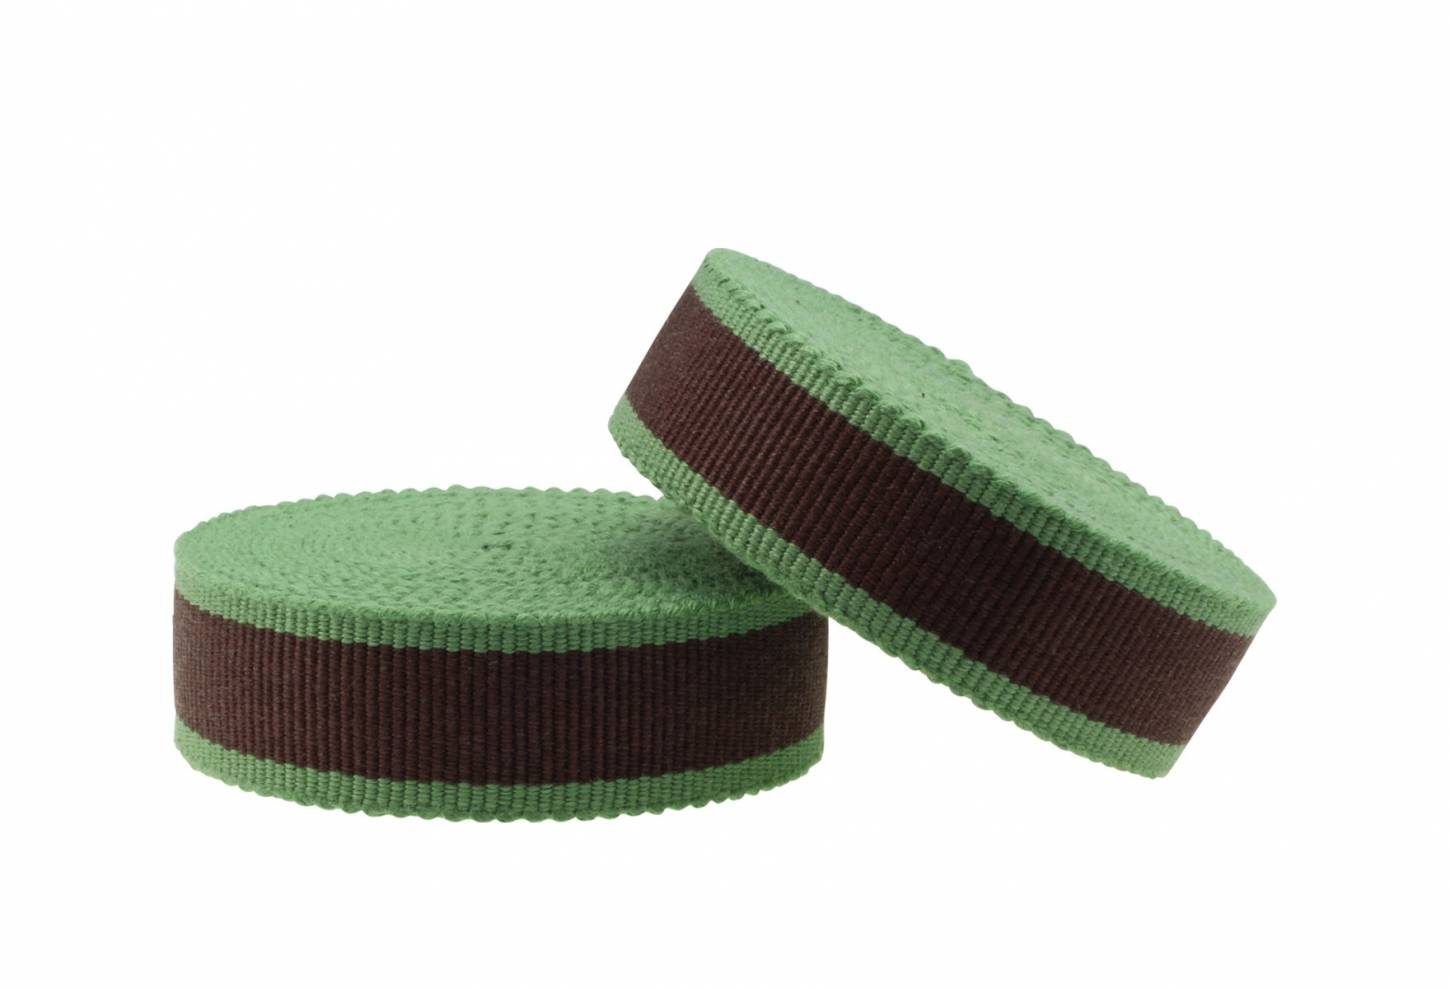 Samurai Bar Tape Lenkerband in grün-braun 100% Cotton Made in Japan Top Quality Unique